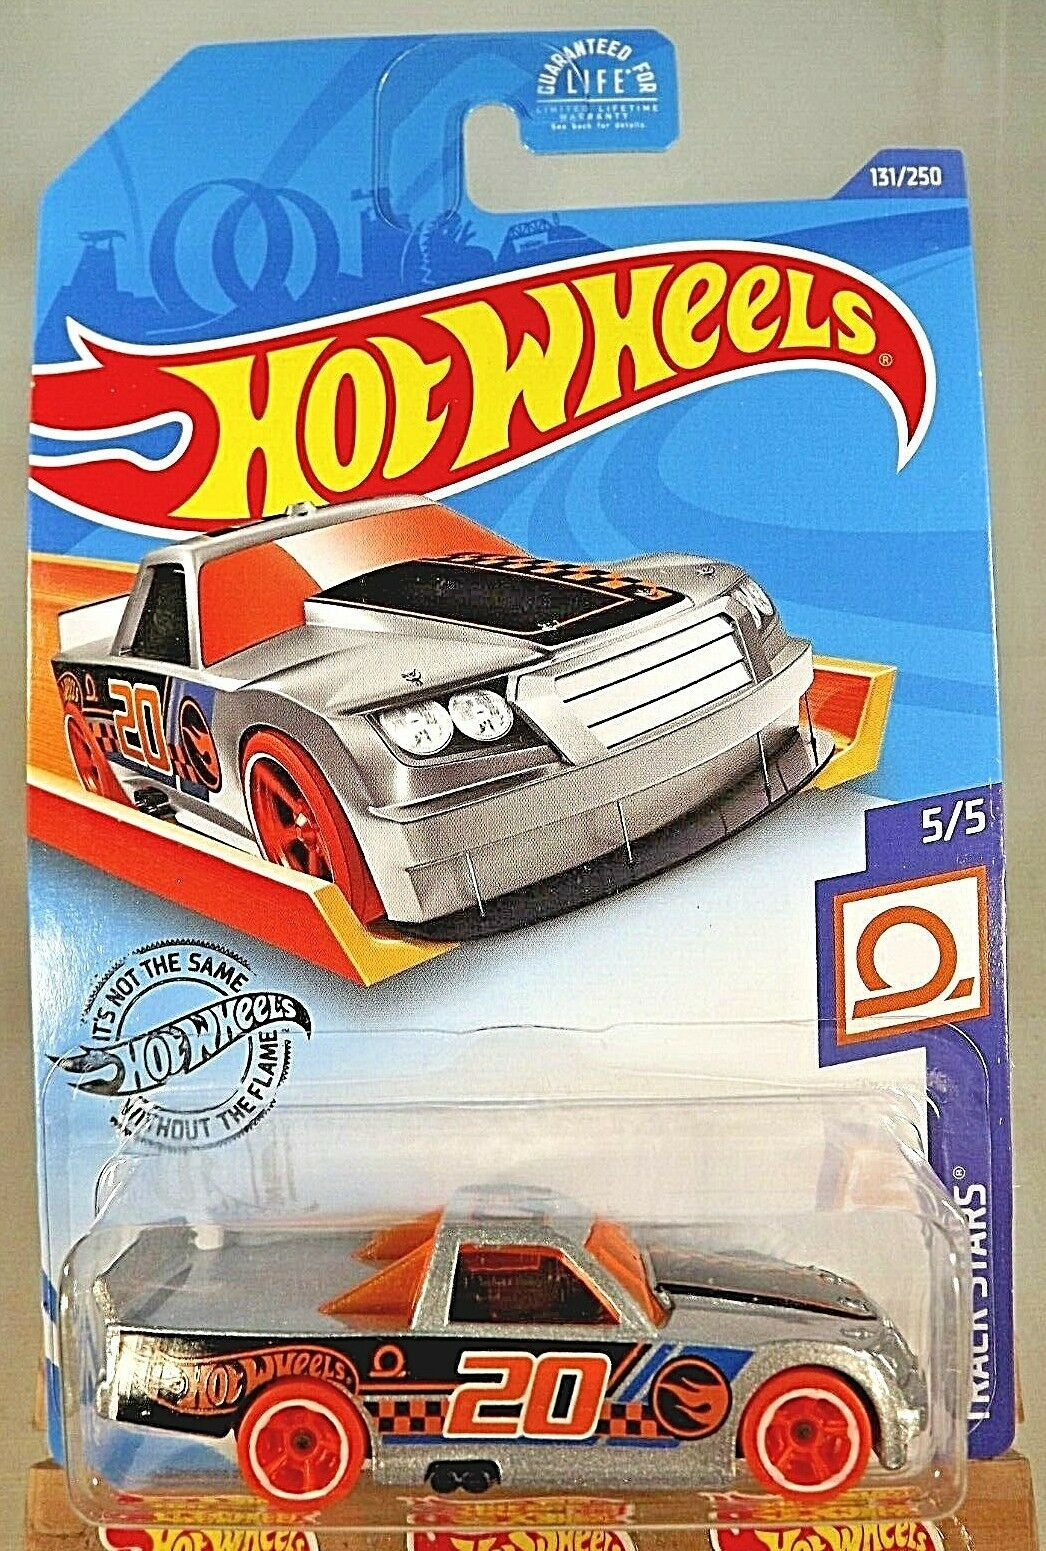 Primary image for 2020 Hot Wheels Treasure Hunt #131 Track Stars 5/5 CIRCLE TRUCKER Gray OrangeWhl